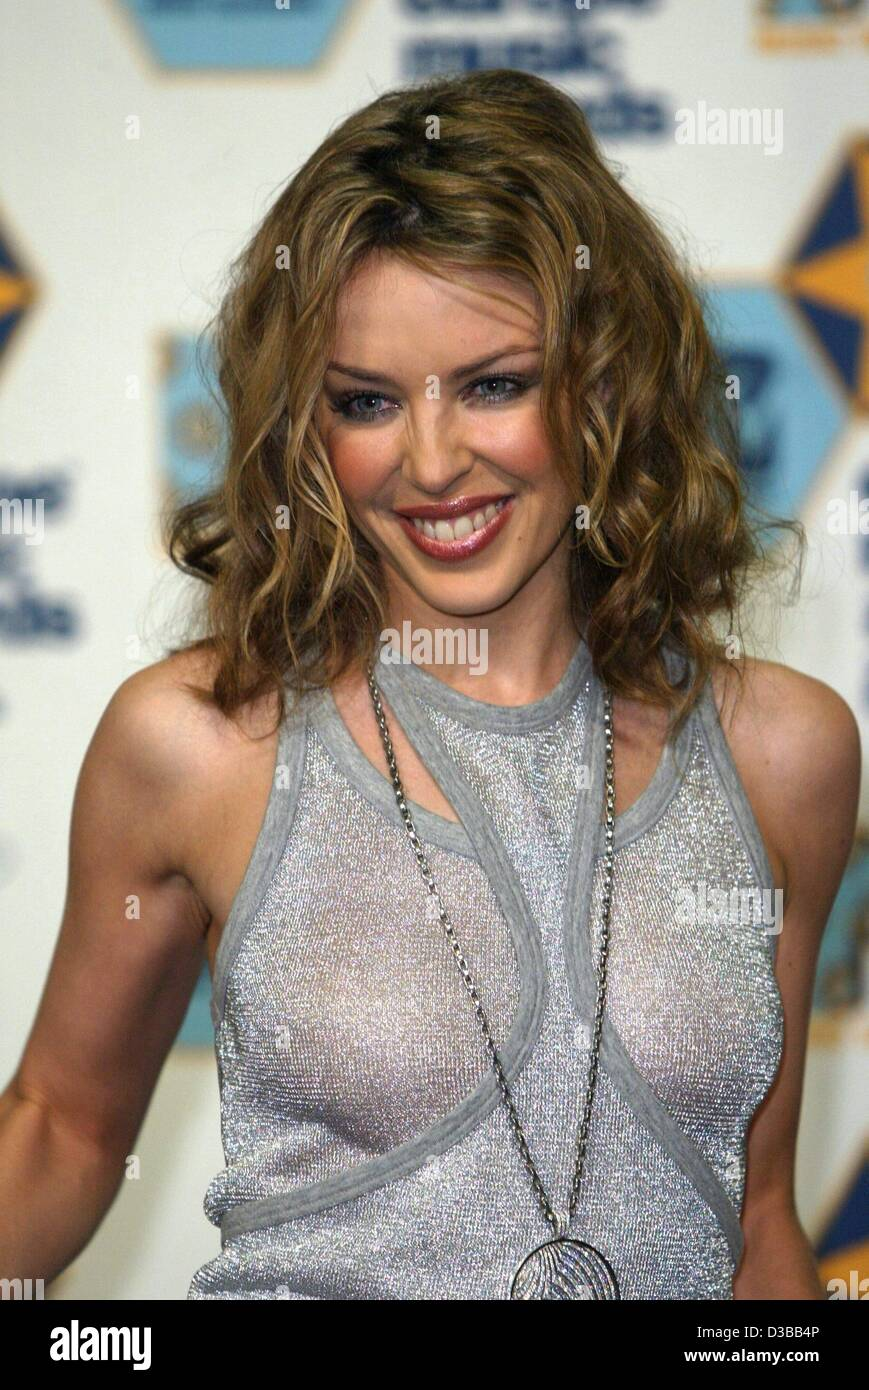 Australian Singer Kylie Minogue Is All Smiles